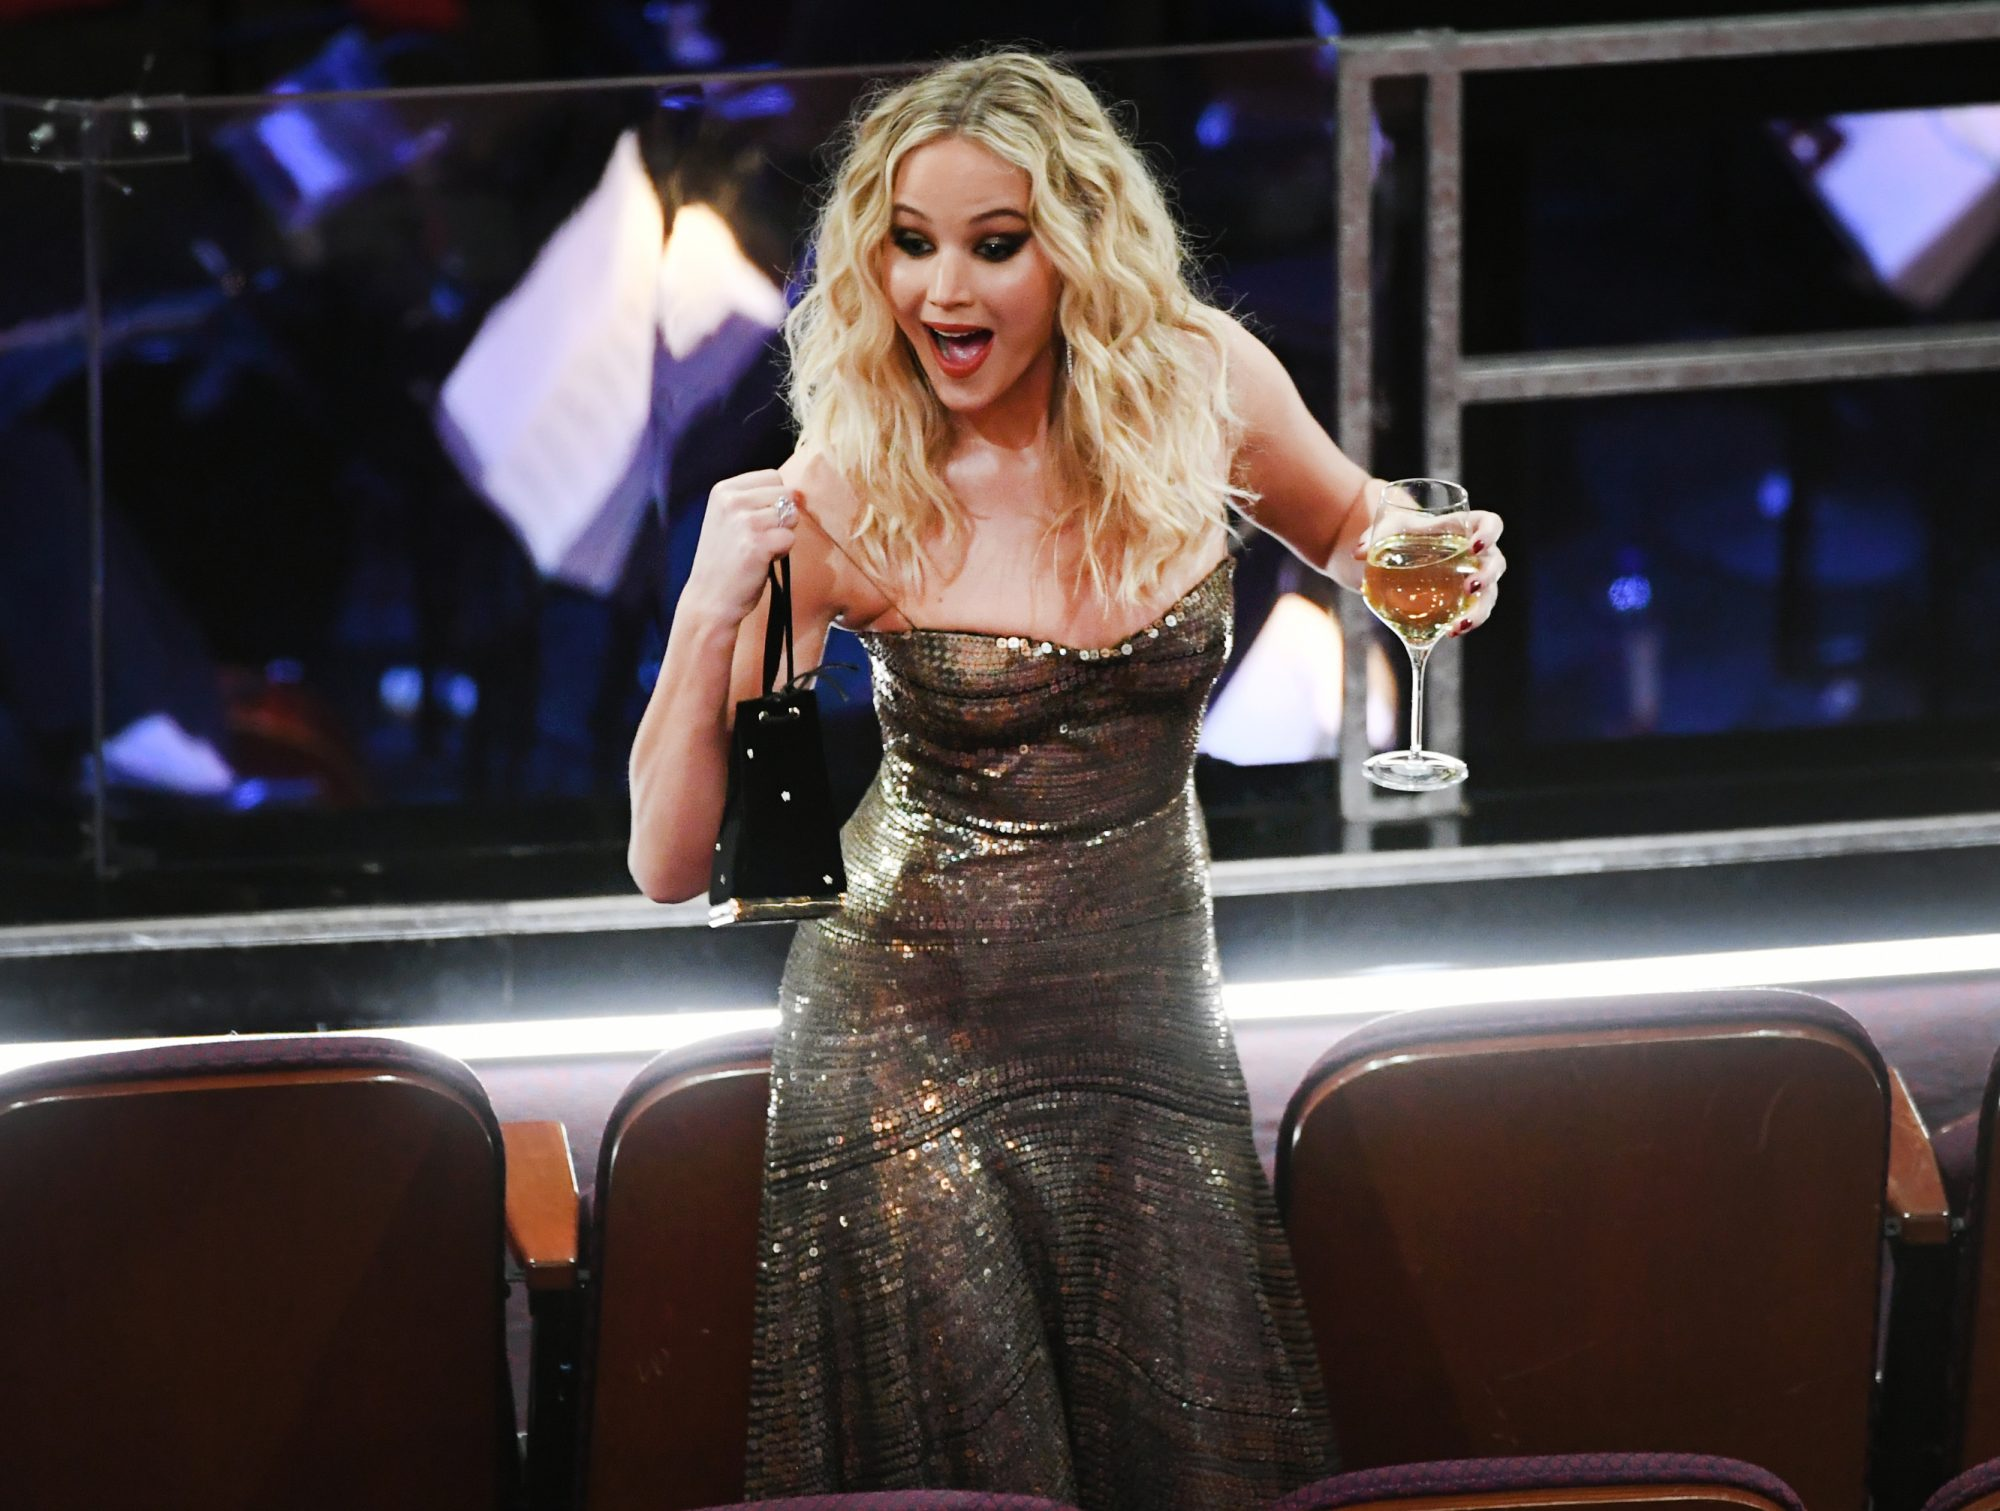 Jennifer Lawrence Climbing Over Chairs at the Oscars, Wine Glass in Hand, Is Too Relatable